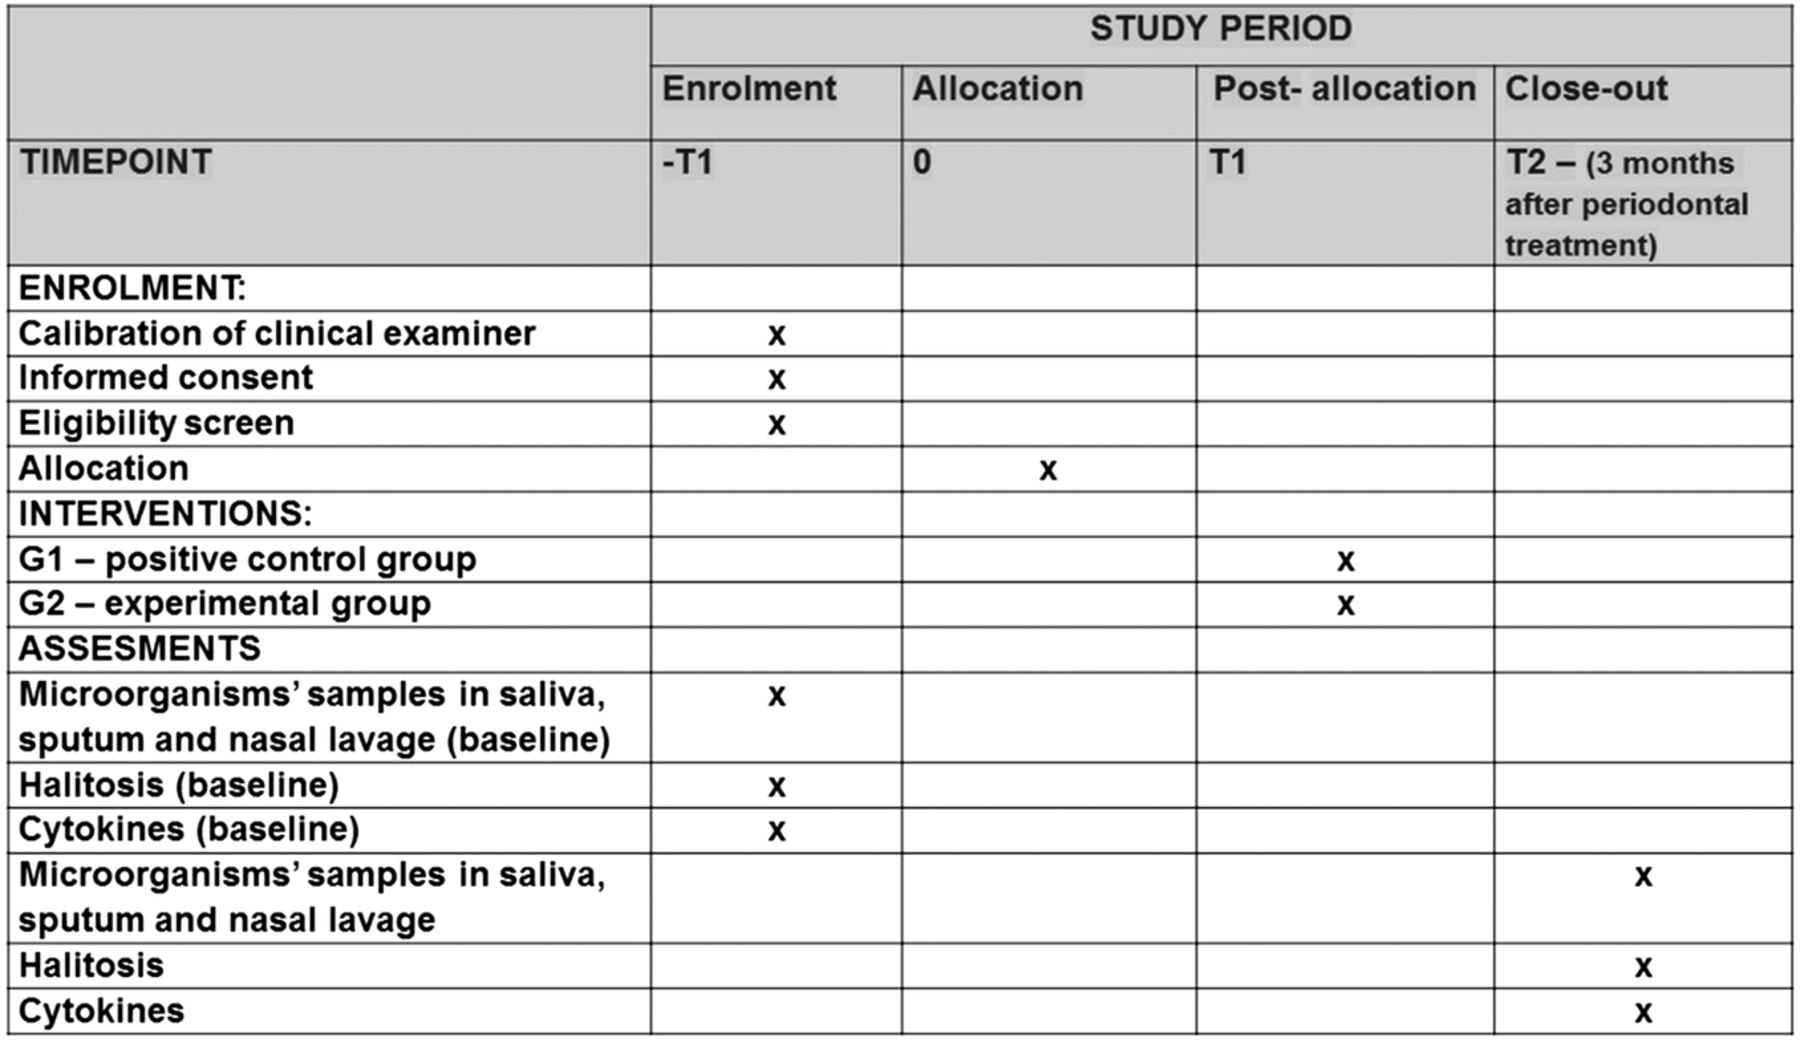 Assessment of the quantity of microorganisms associated with